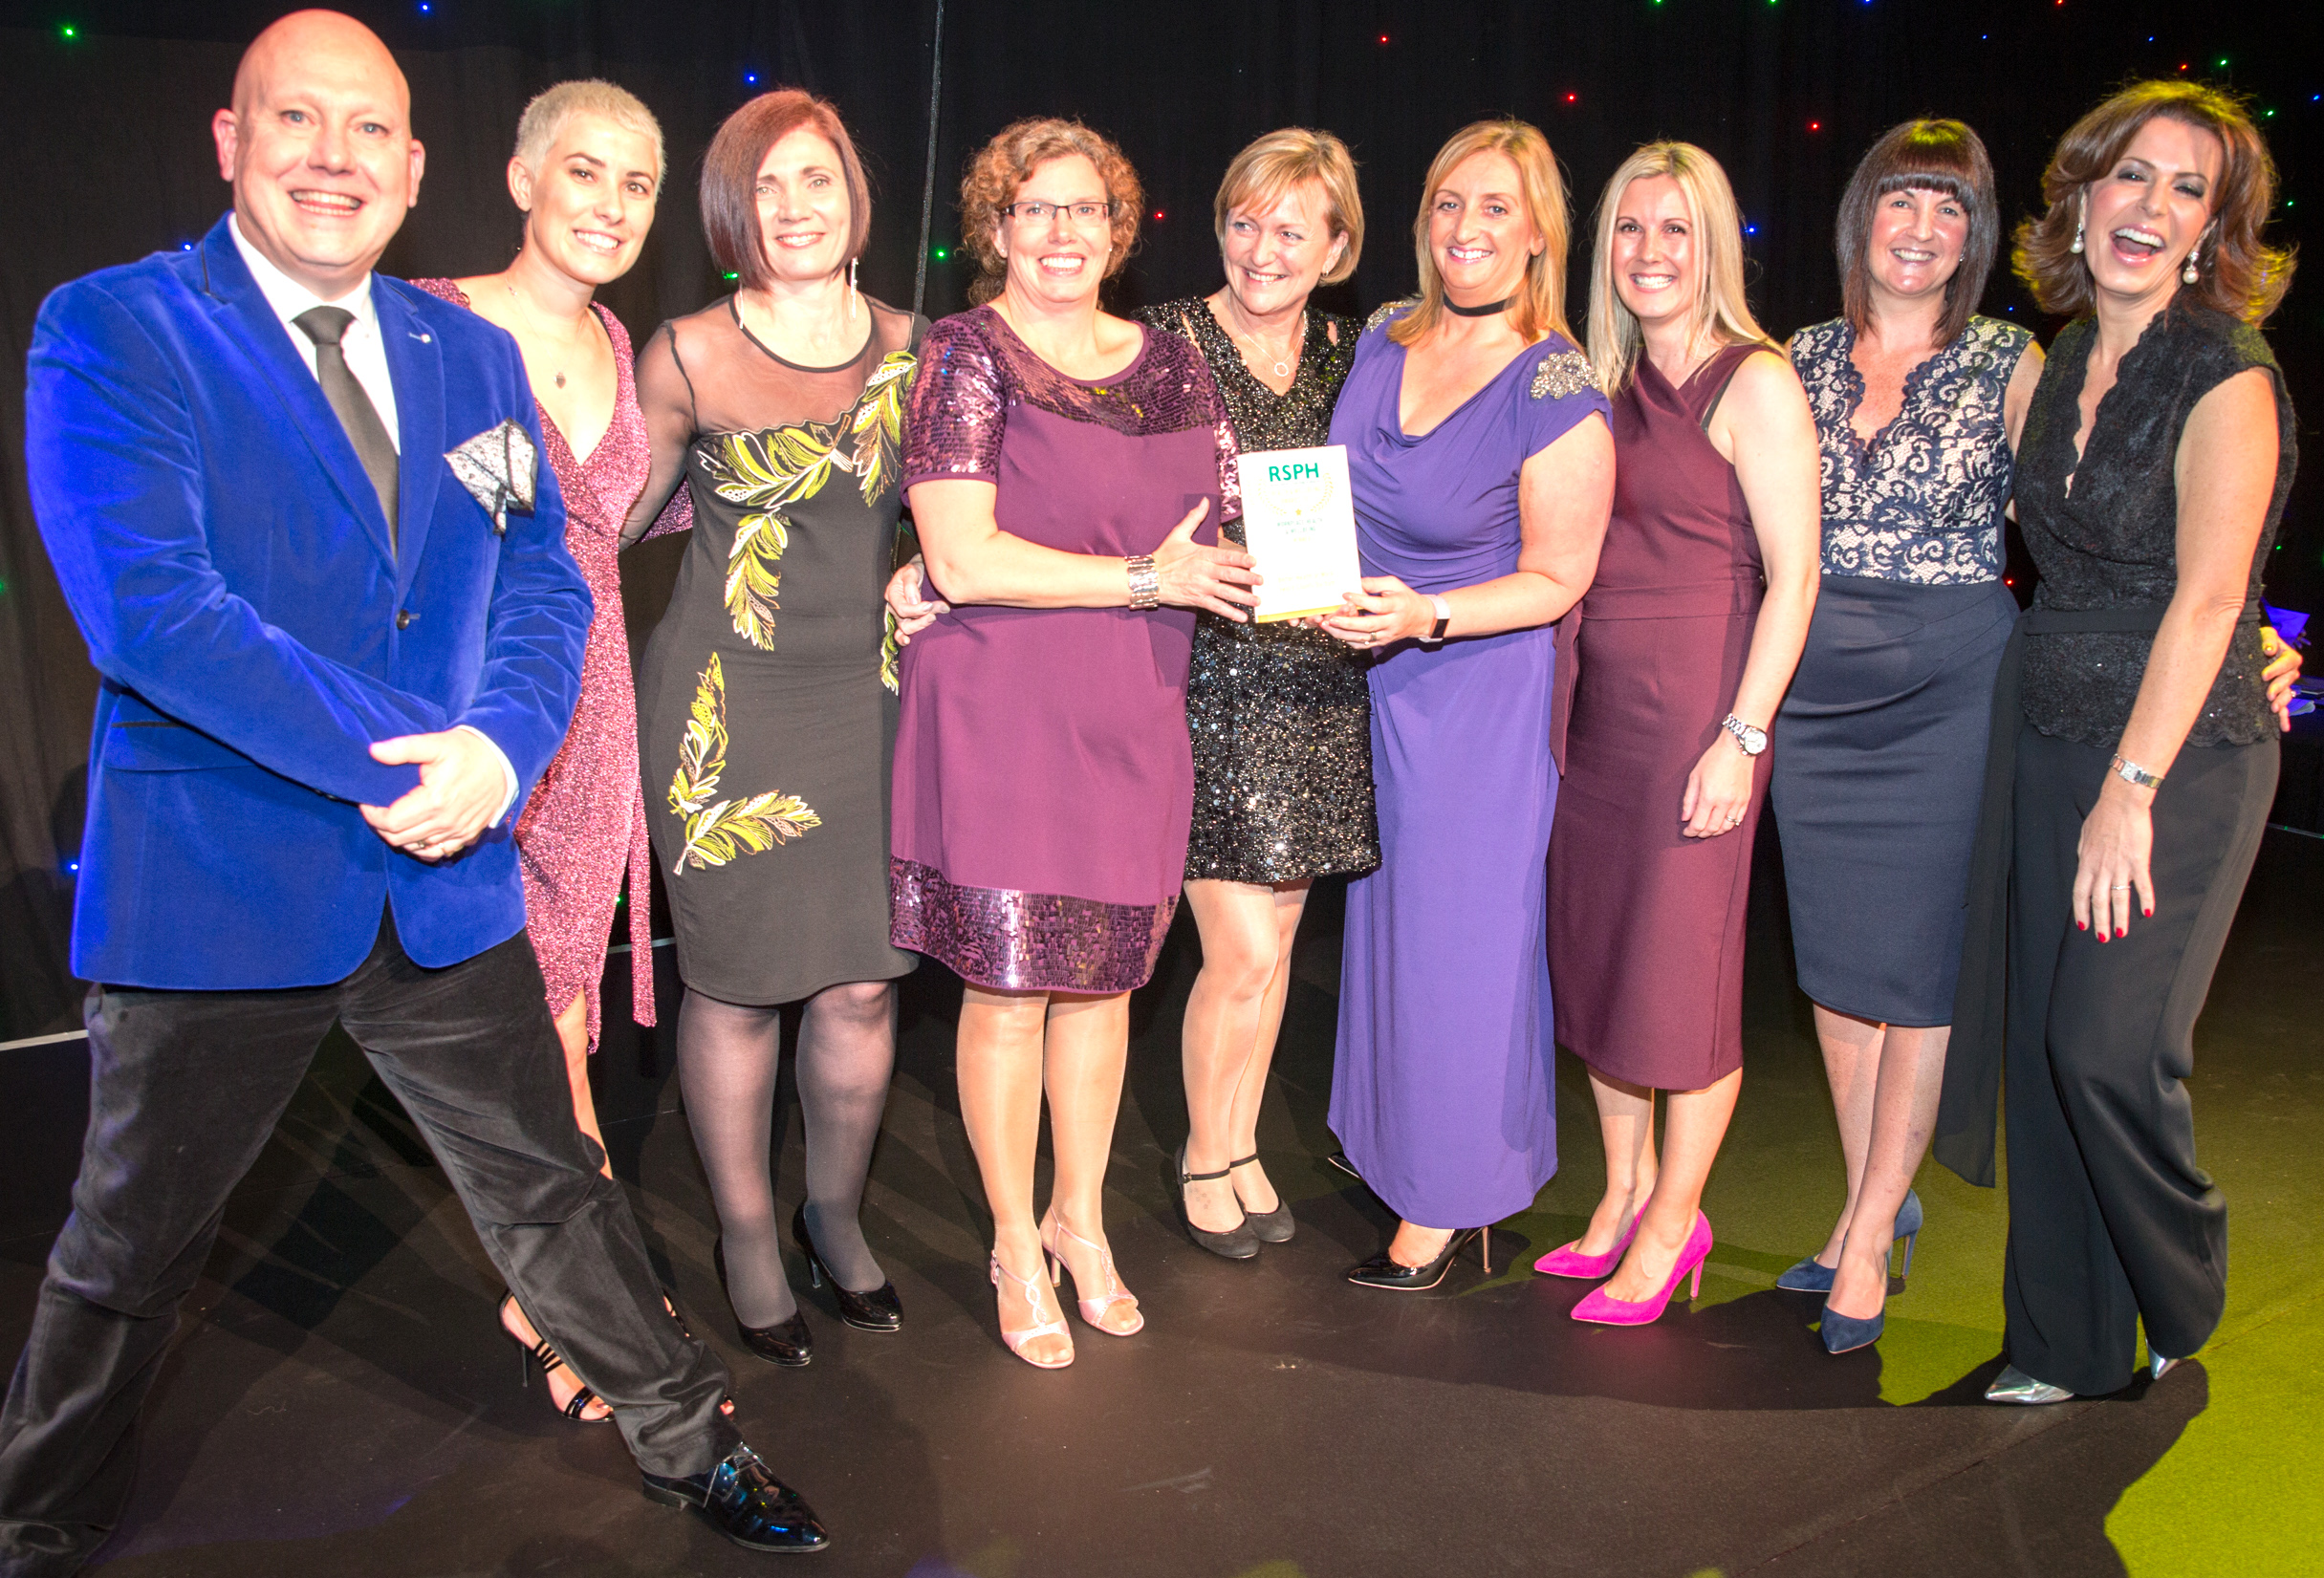 Local Champions PCP Win RSPH Awards